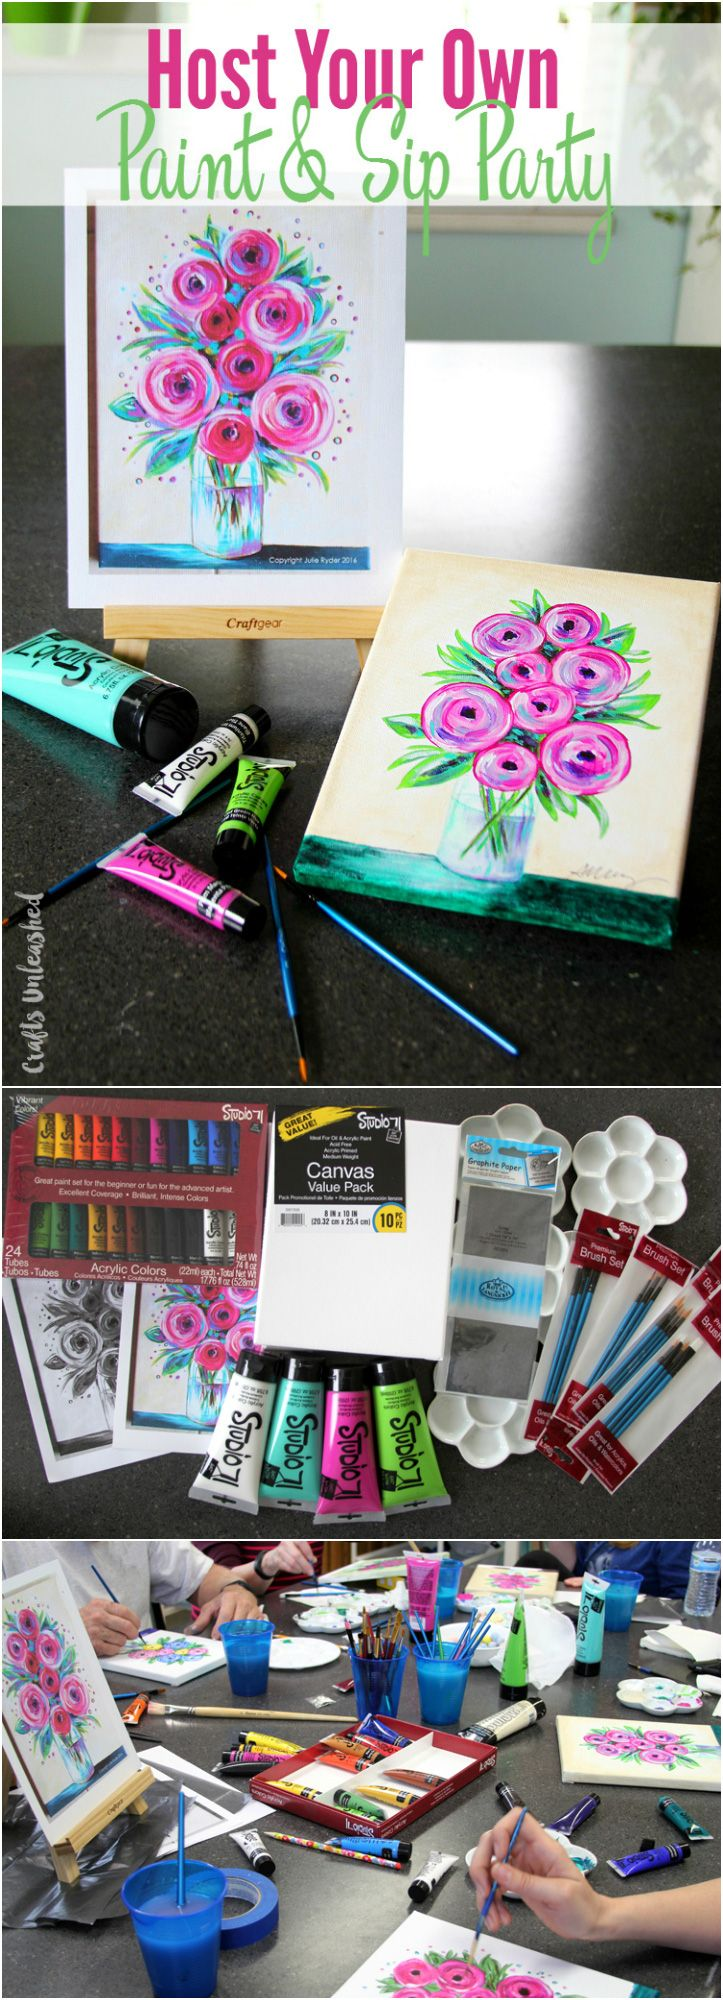 Diy Painting Party Host Your Own Paint Sip Consumer Crafts